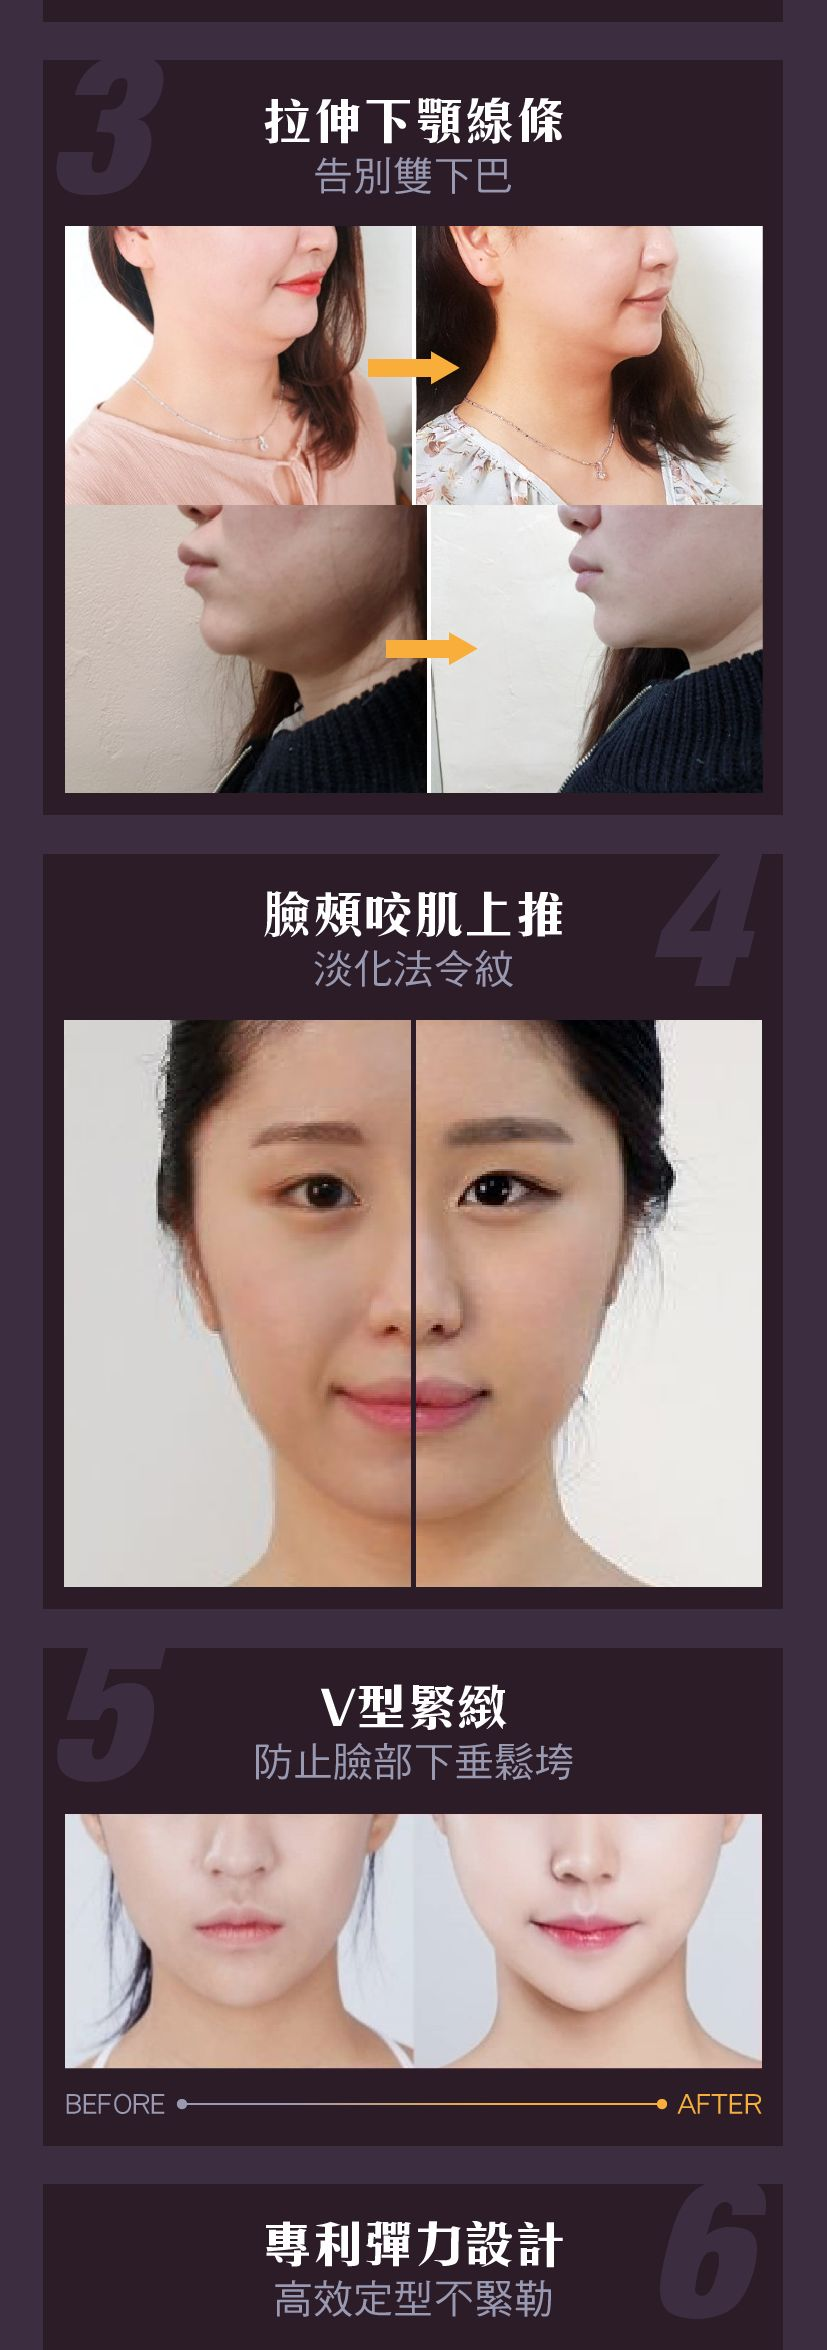 Muro Coconenne V-Line Band  V Shaped Face while Sleeping (1pcs) 睡眠瘦脸神器 D07-4.png